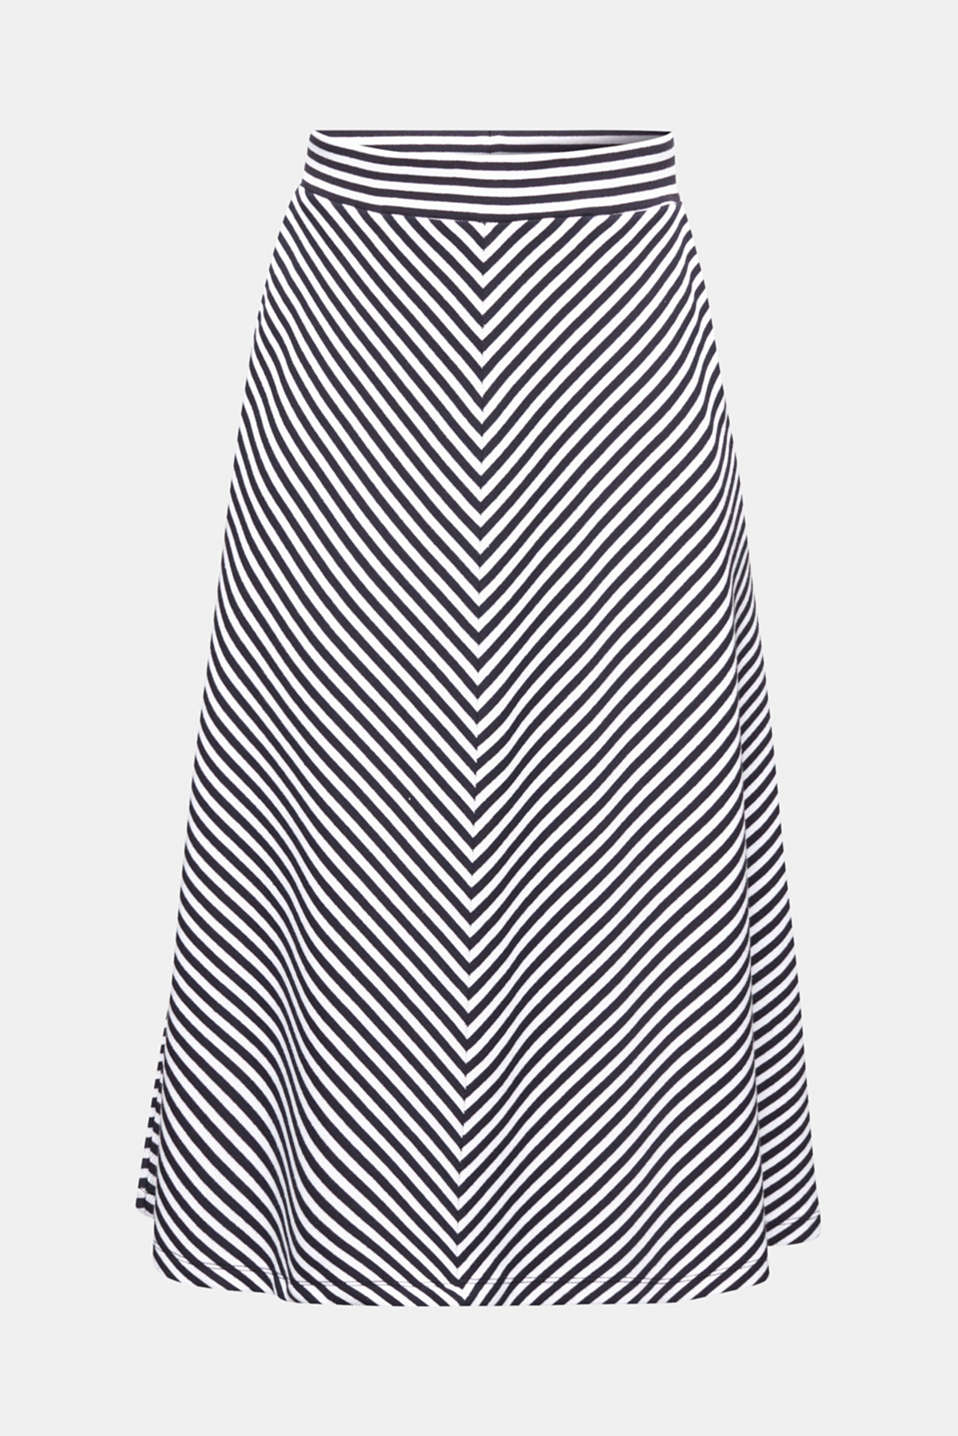 A-line skirt made of striped jersey, NAVY, detail image number 5